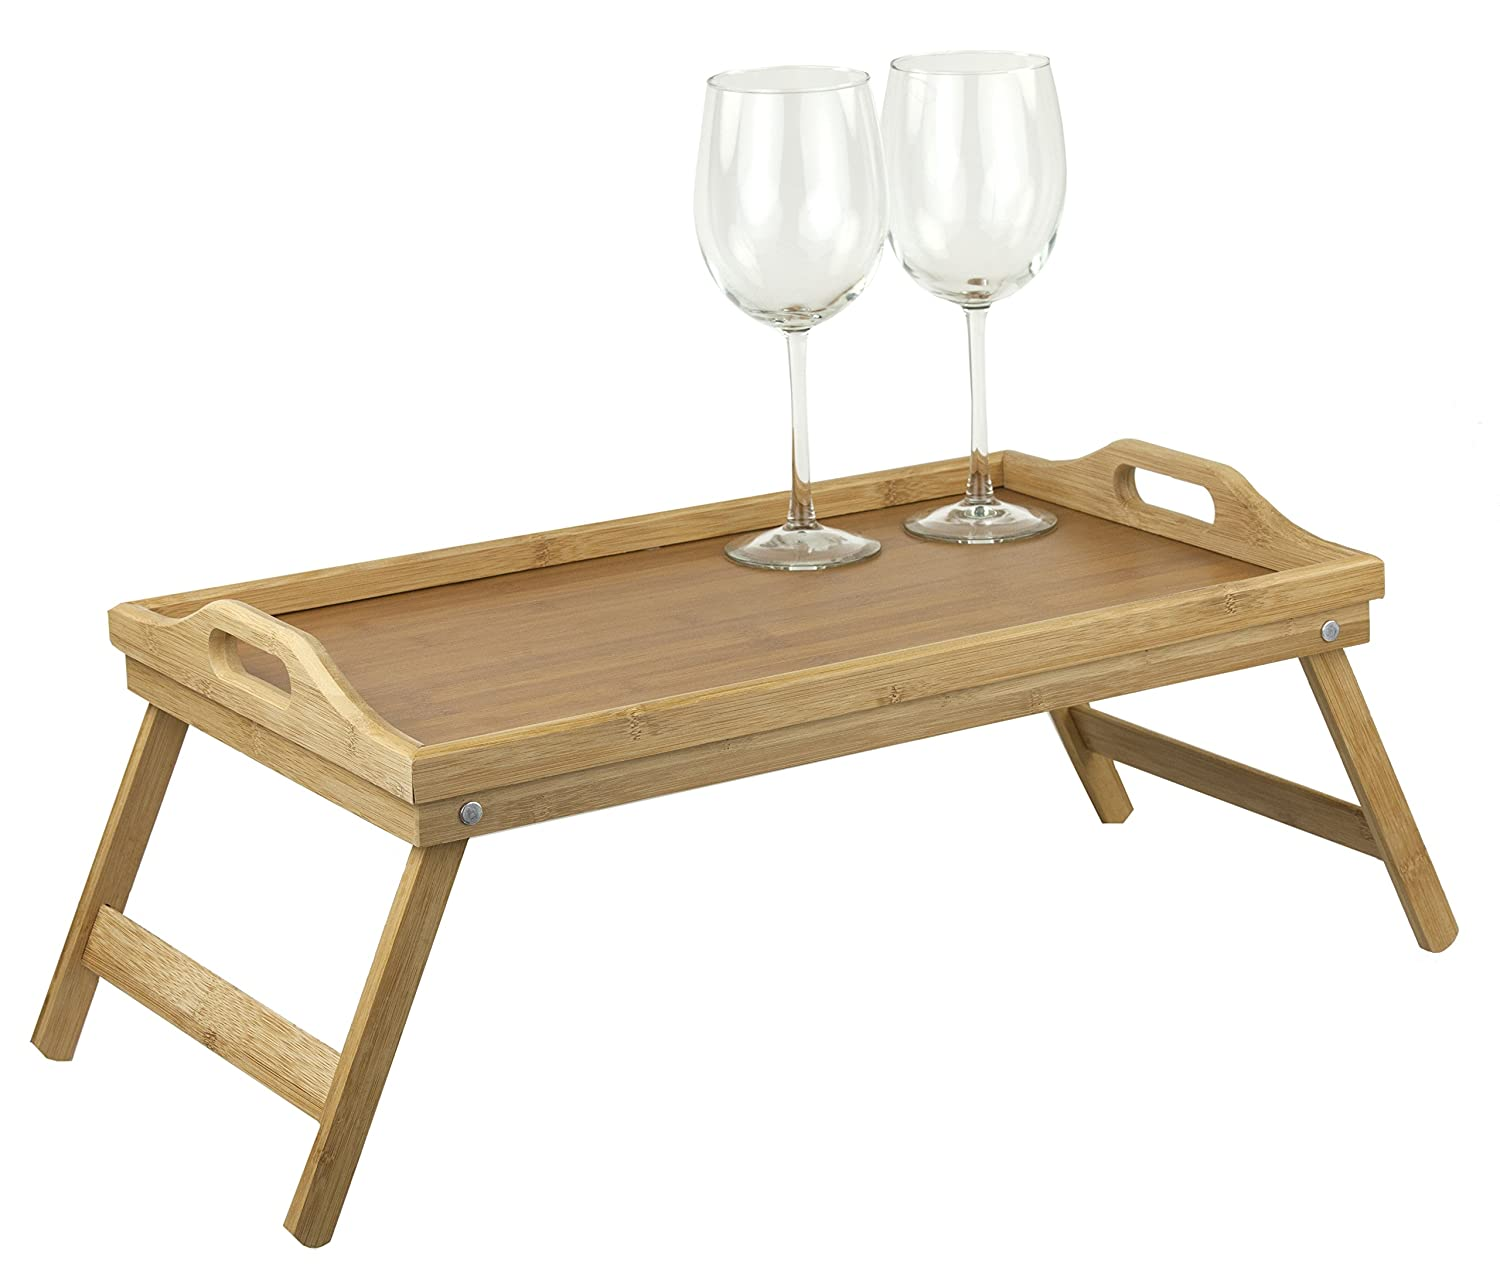 Home Basics Bamboo Breakfast Bed Tray, Natural HDS Trading Corp BT01014